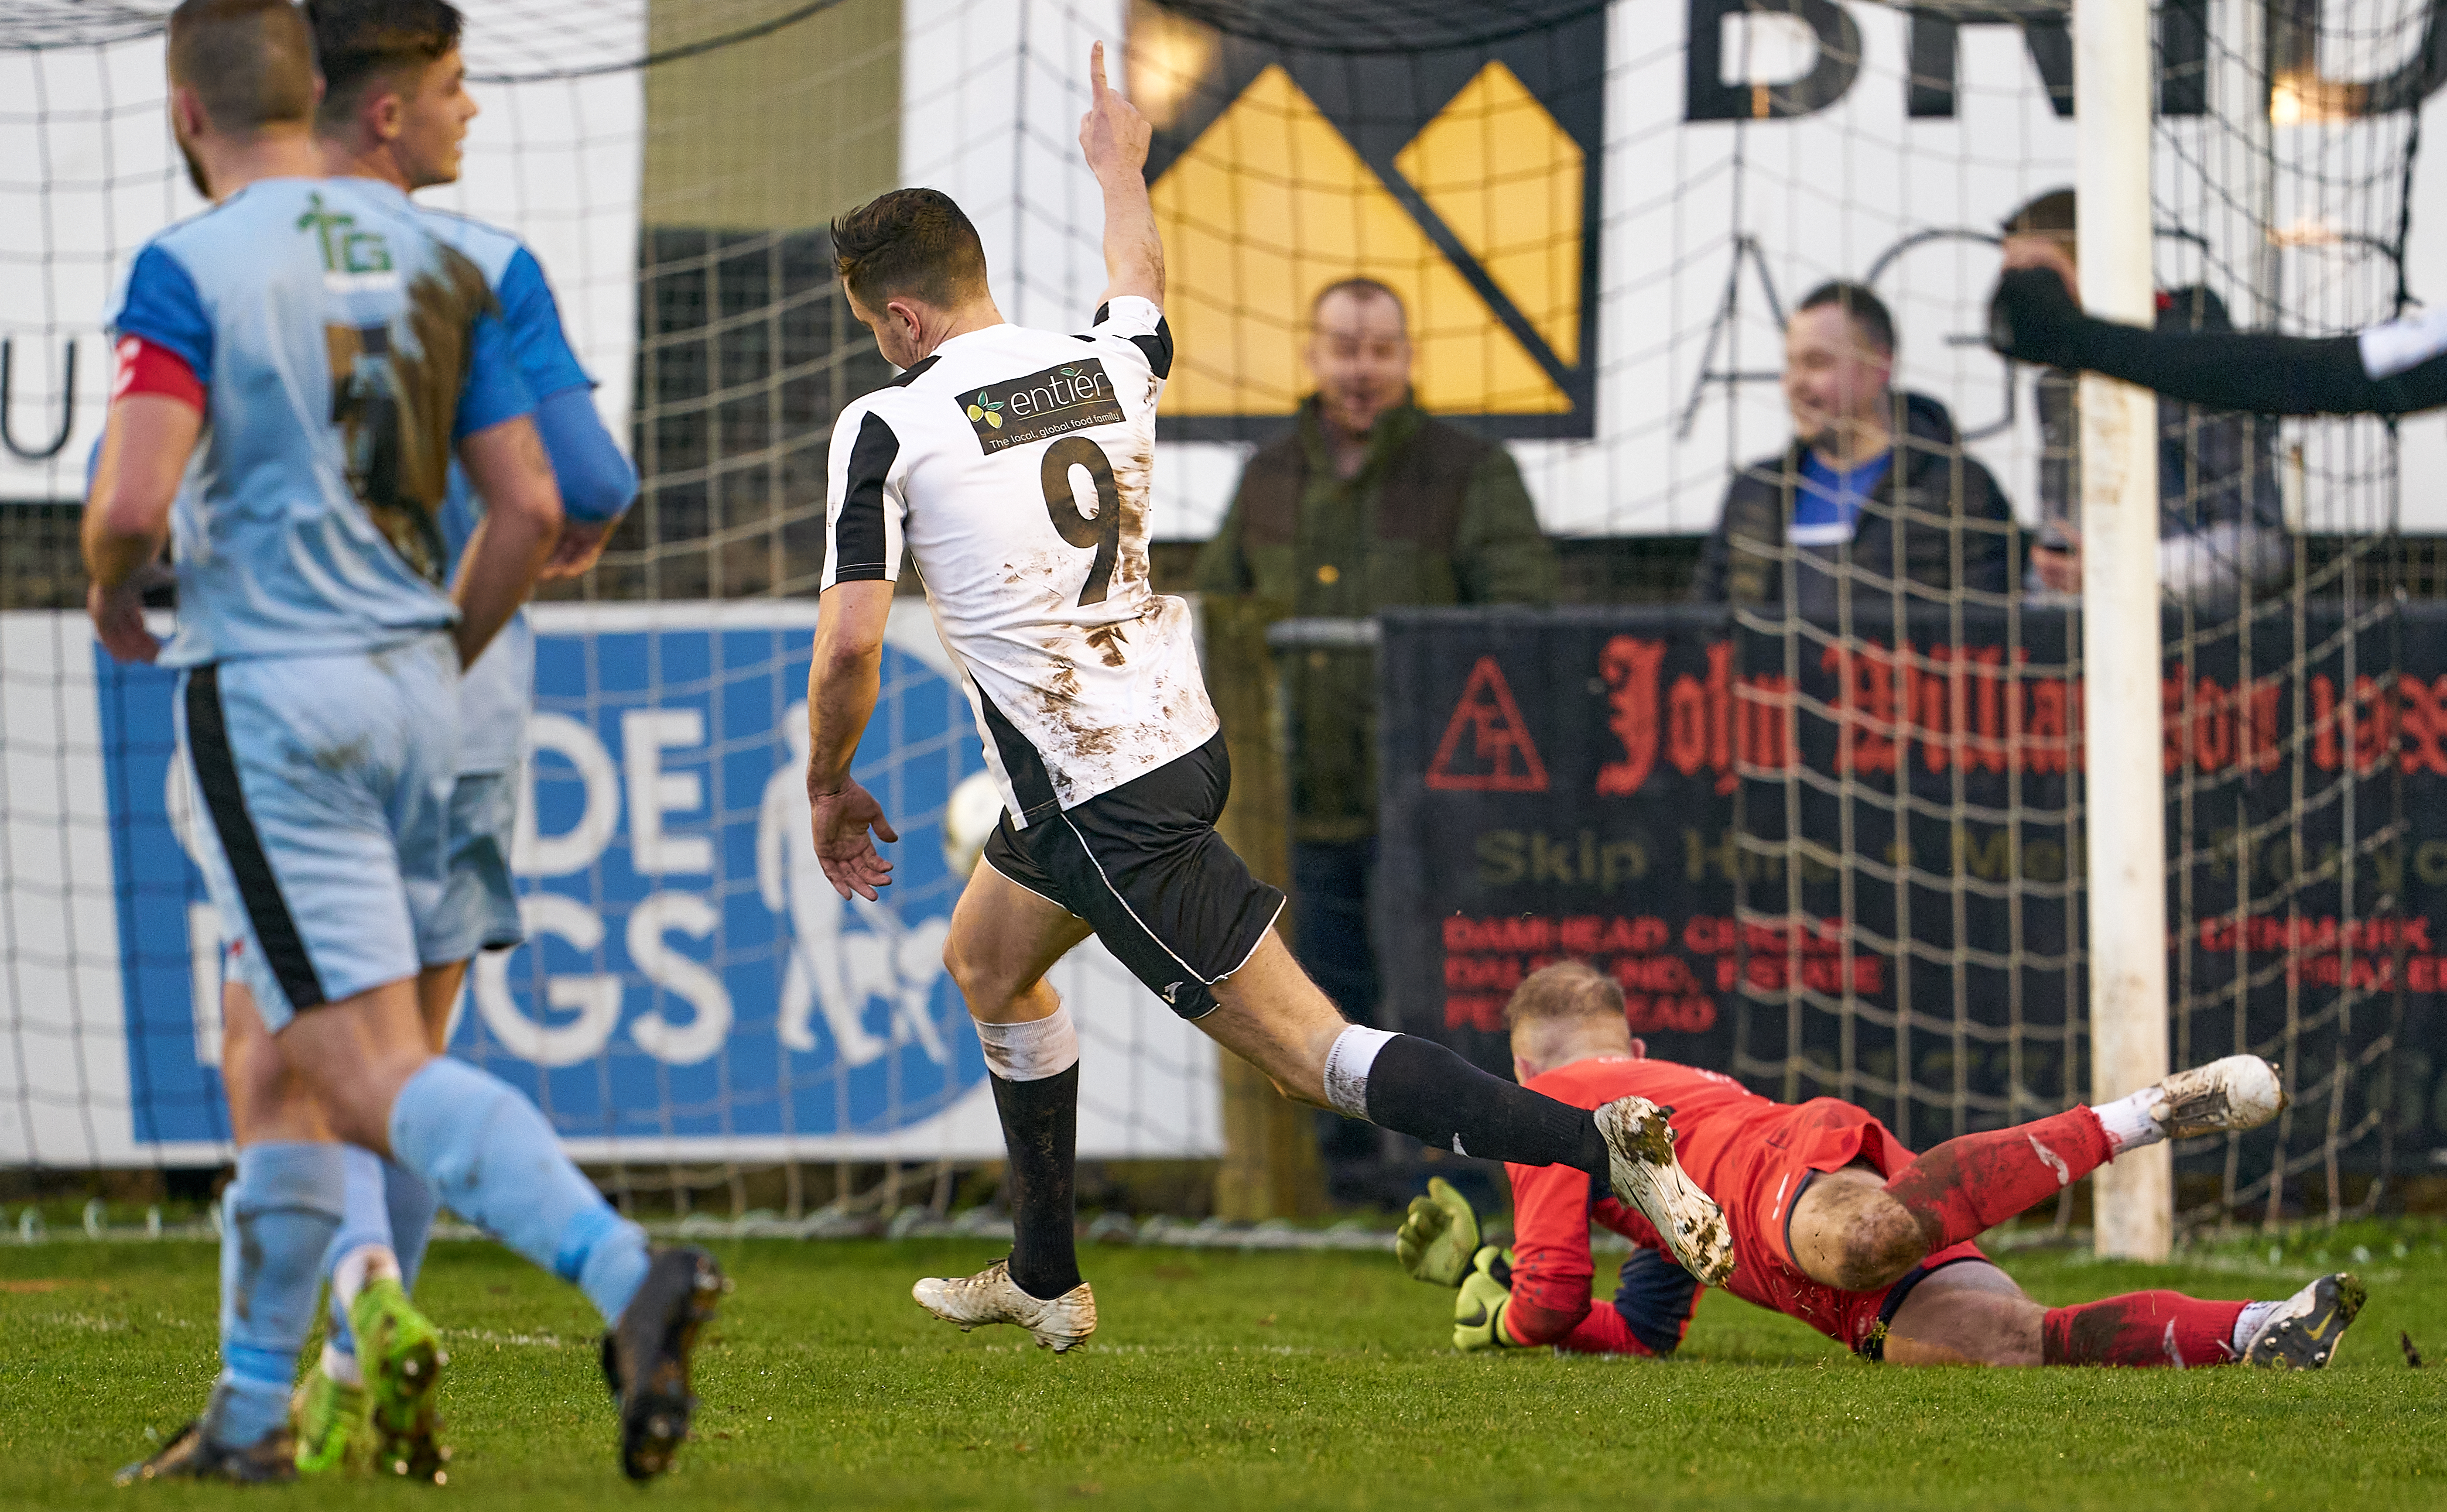 Fraserburgh's Paul Campbell scores No 2